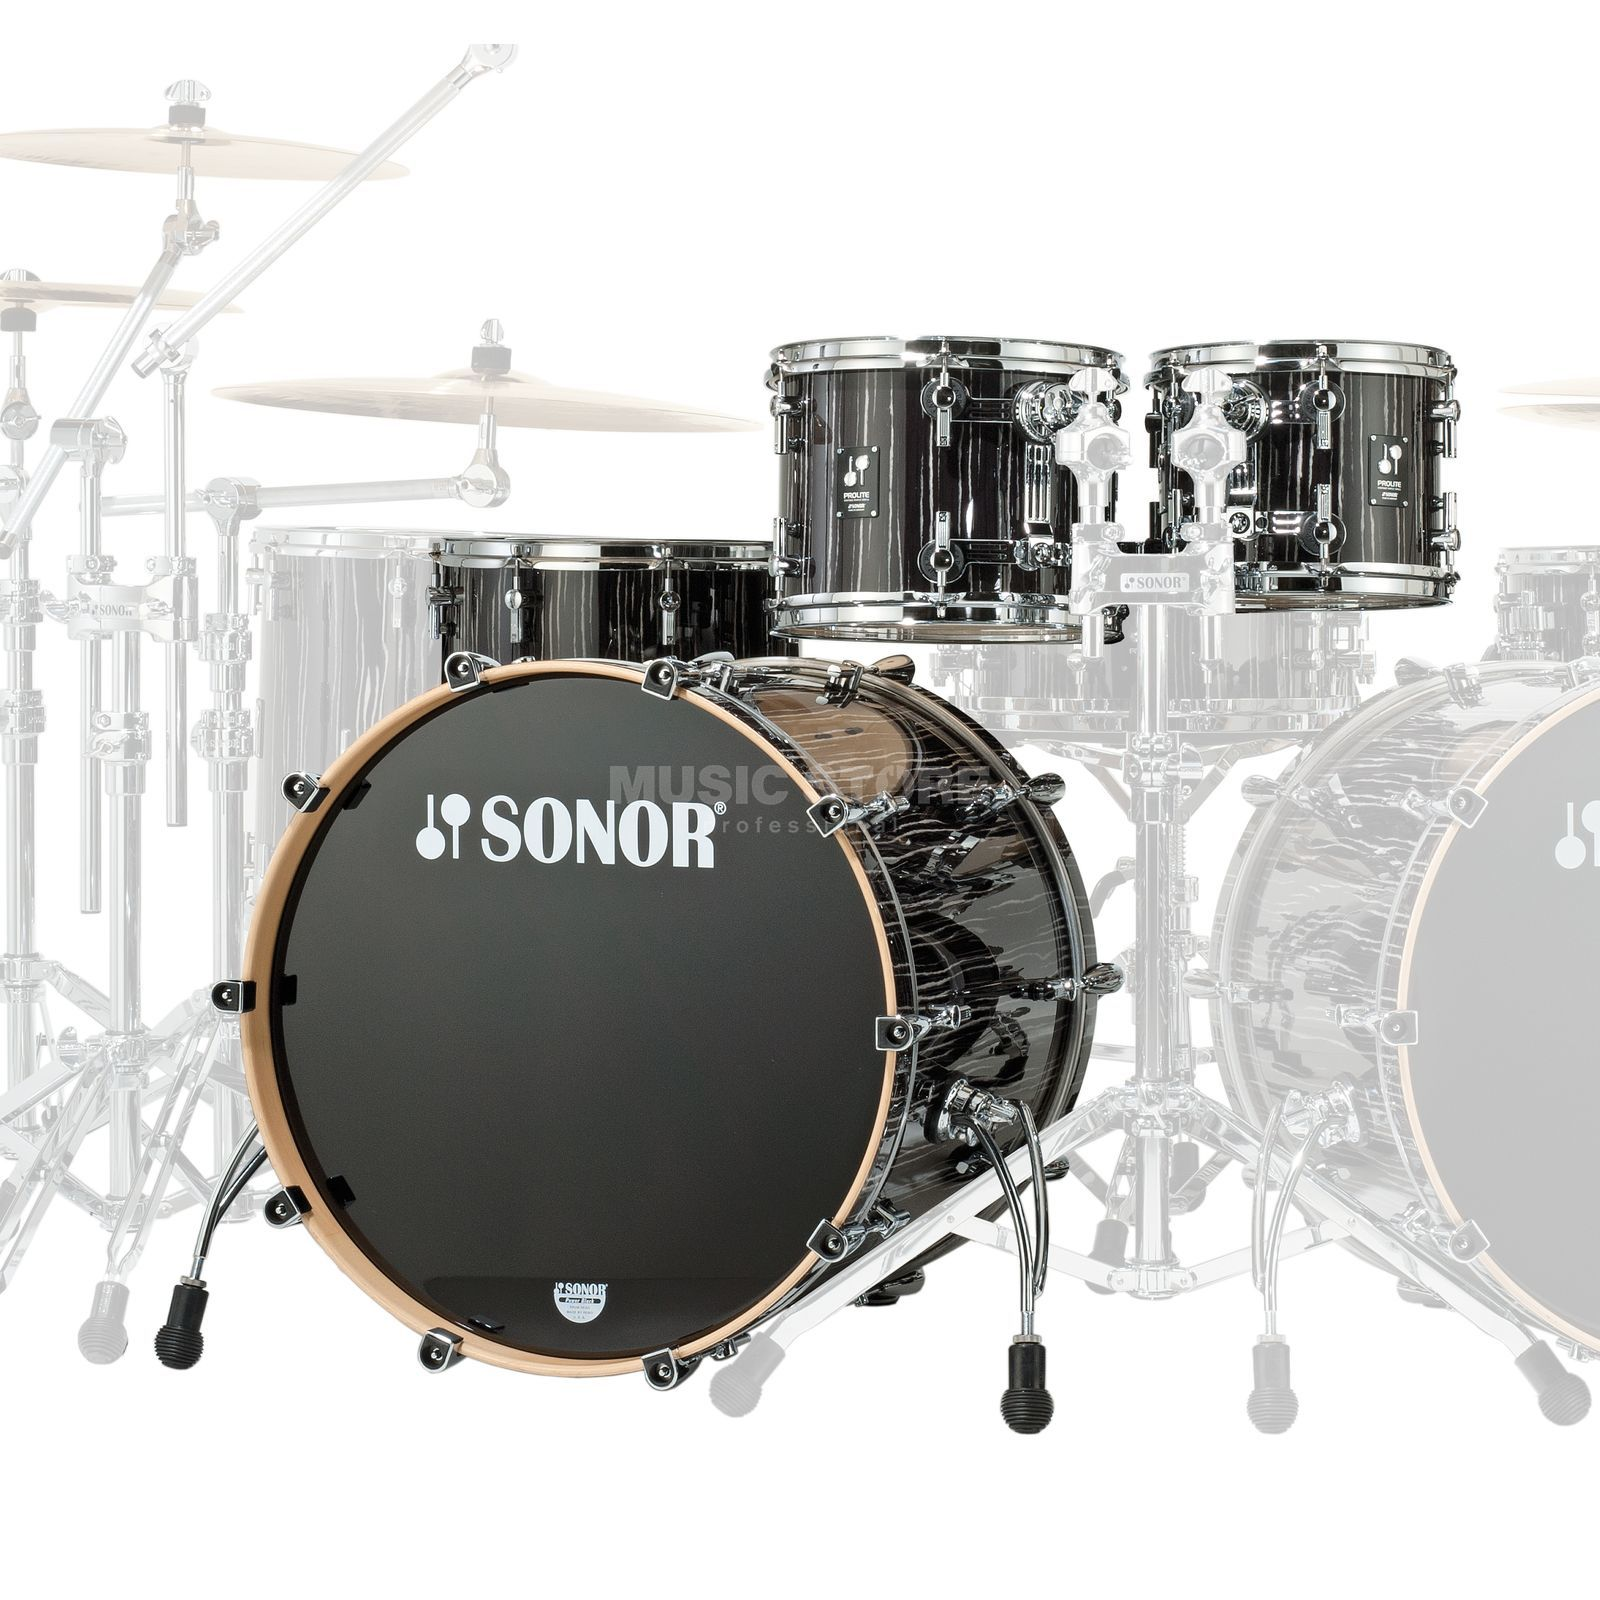 Sonor ProLite Stage 3, Ebony White Stripes #77 Изображение товара